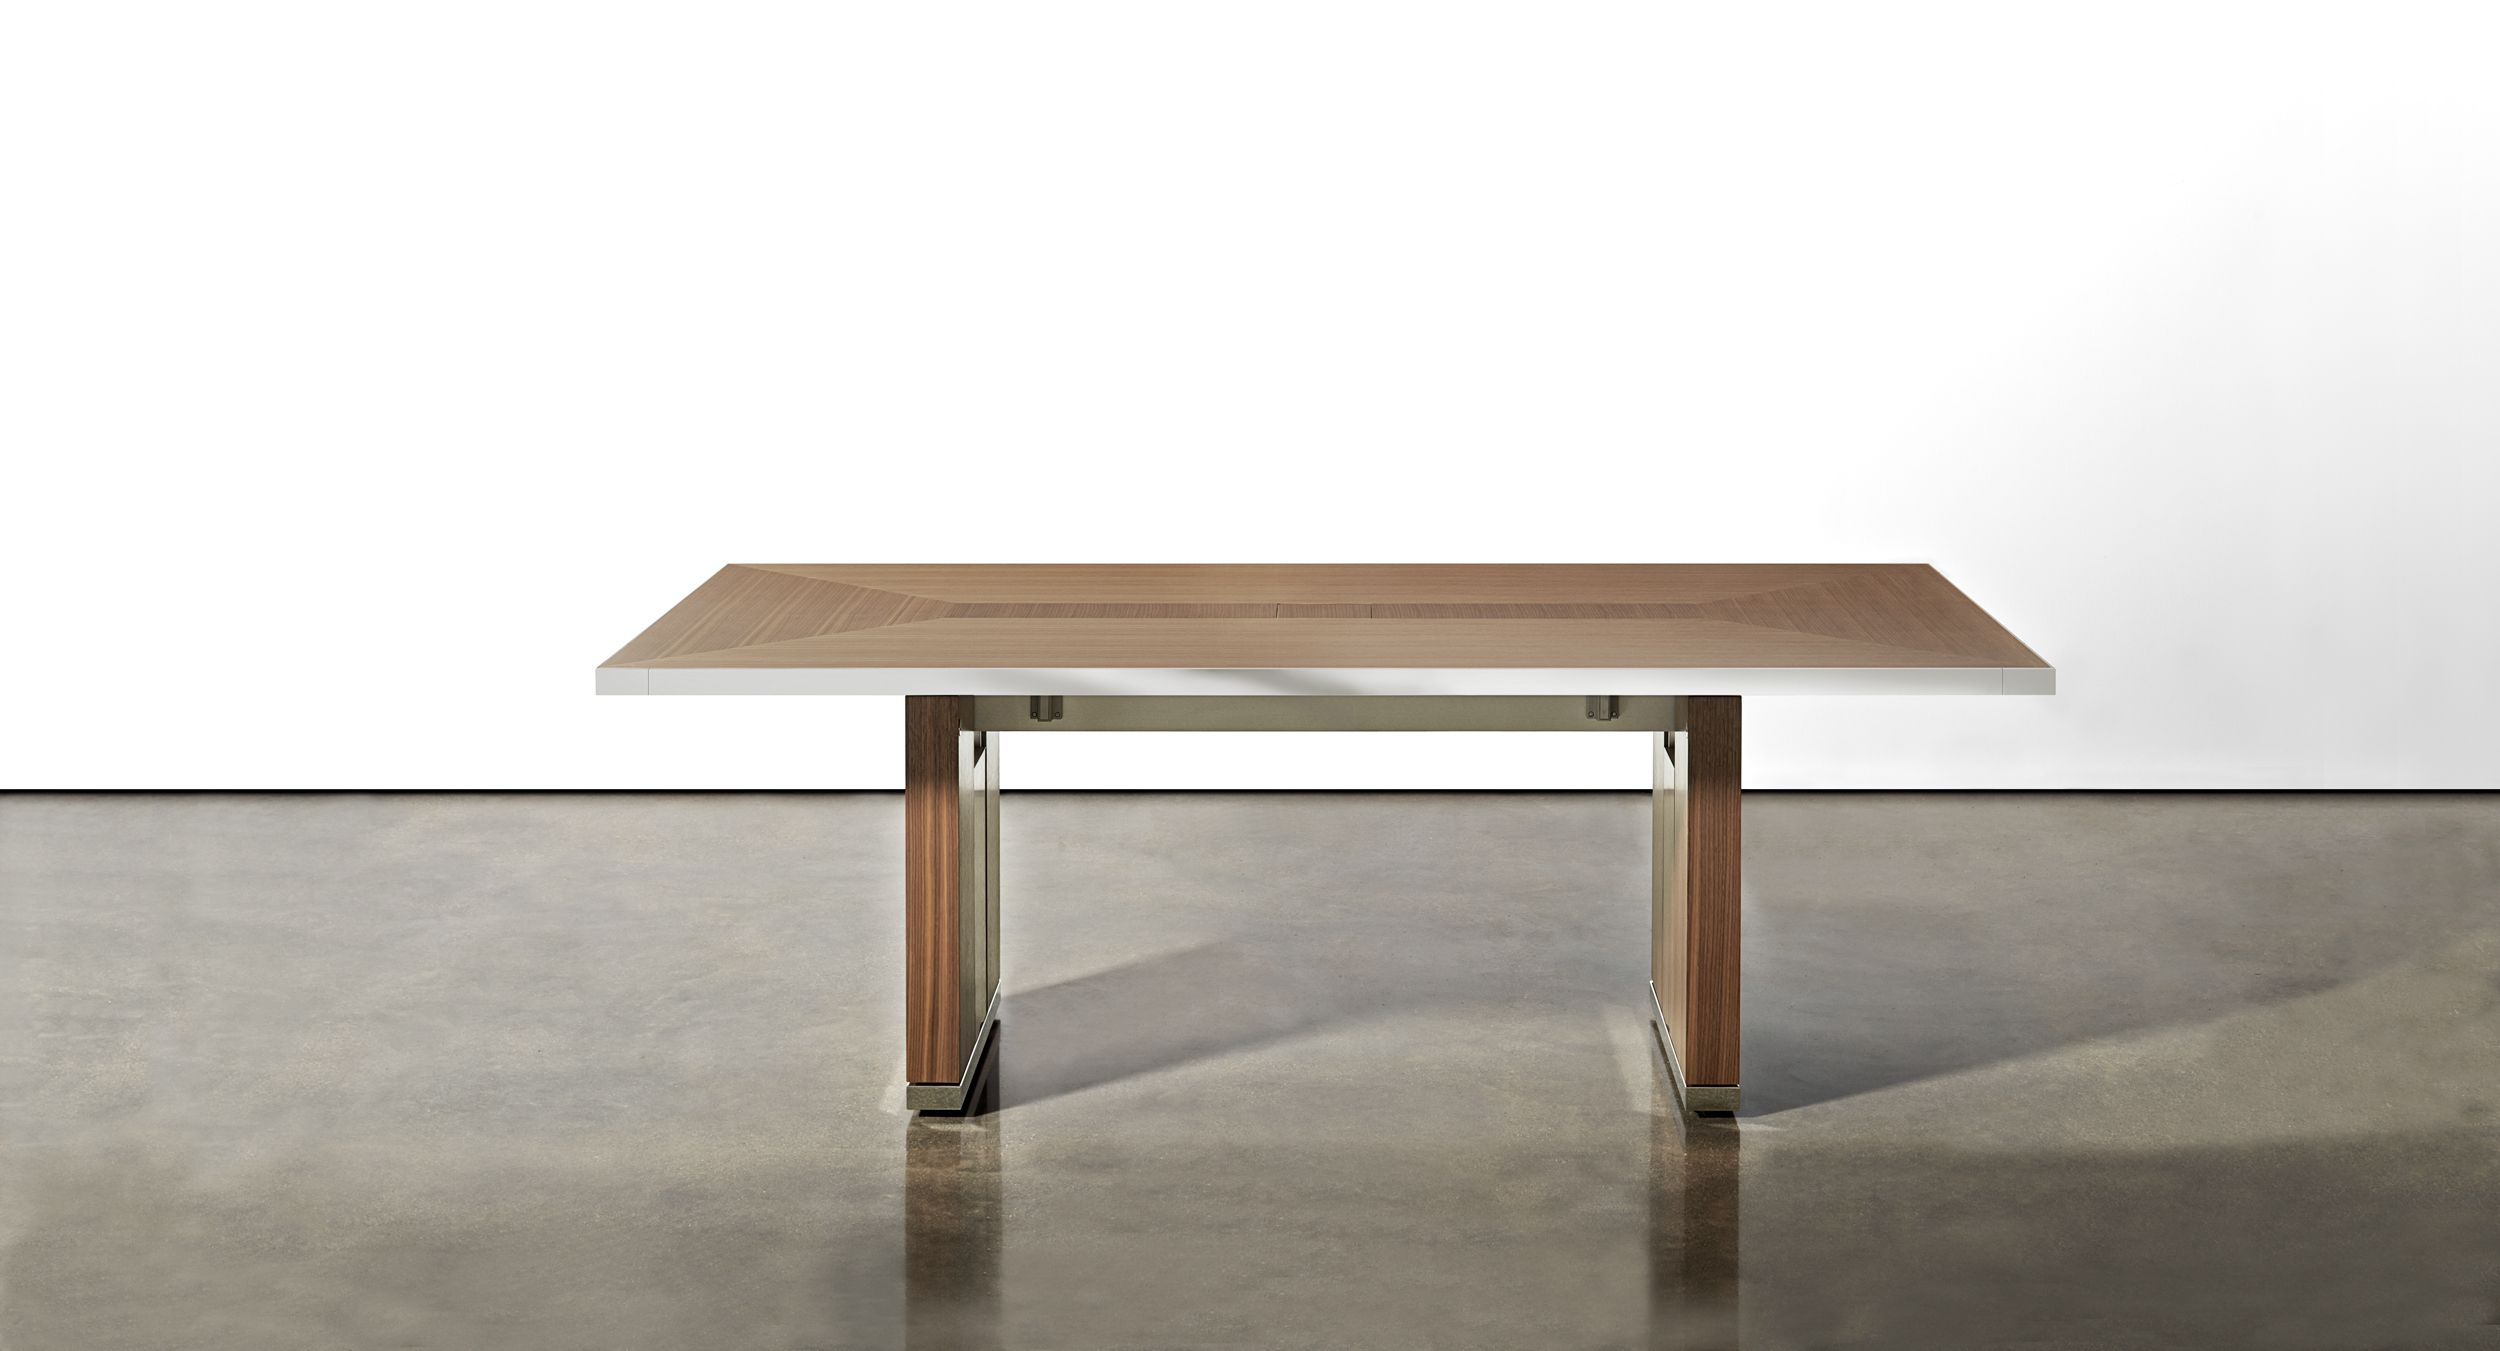 Motus mobile table with veneer pattern surface